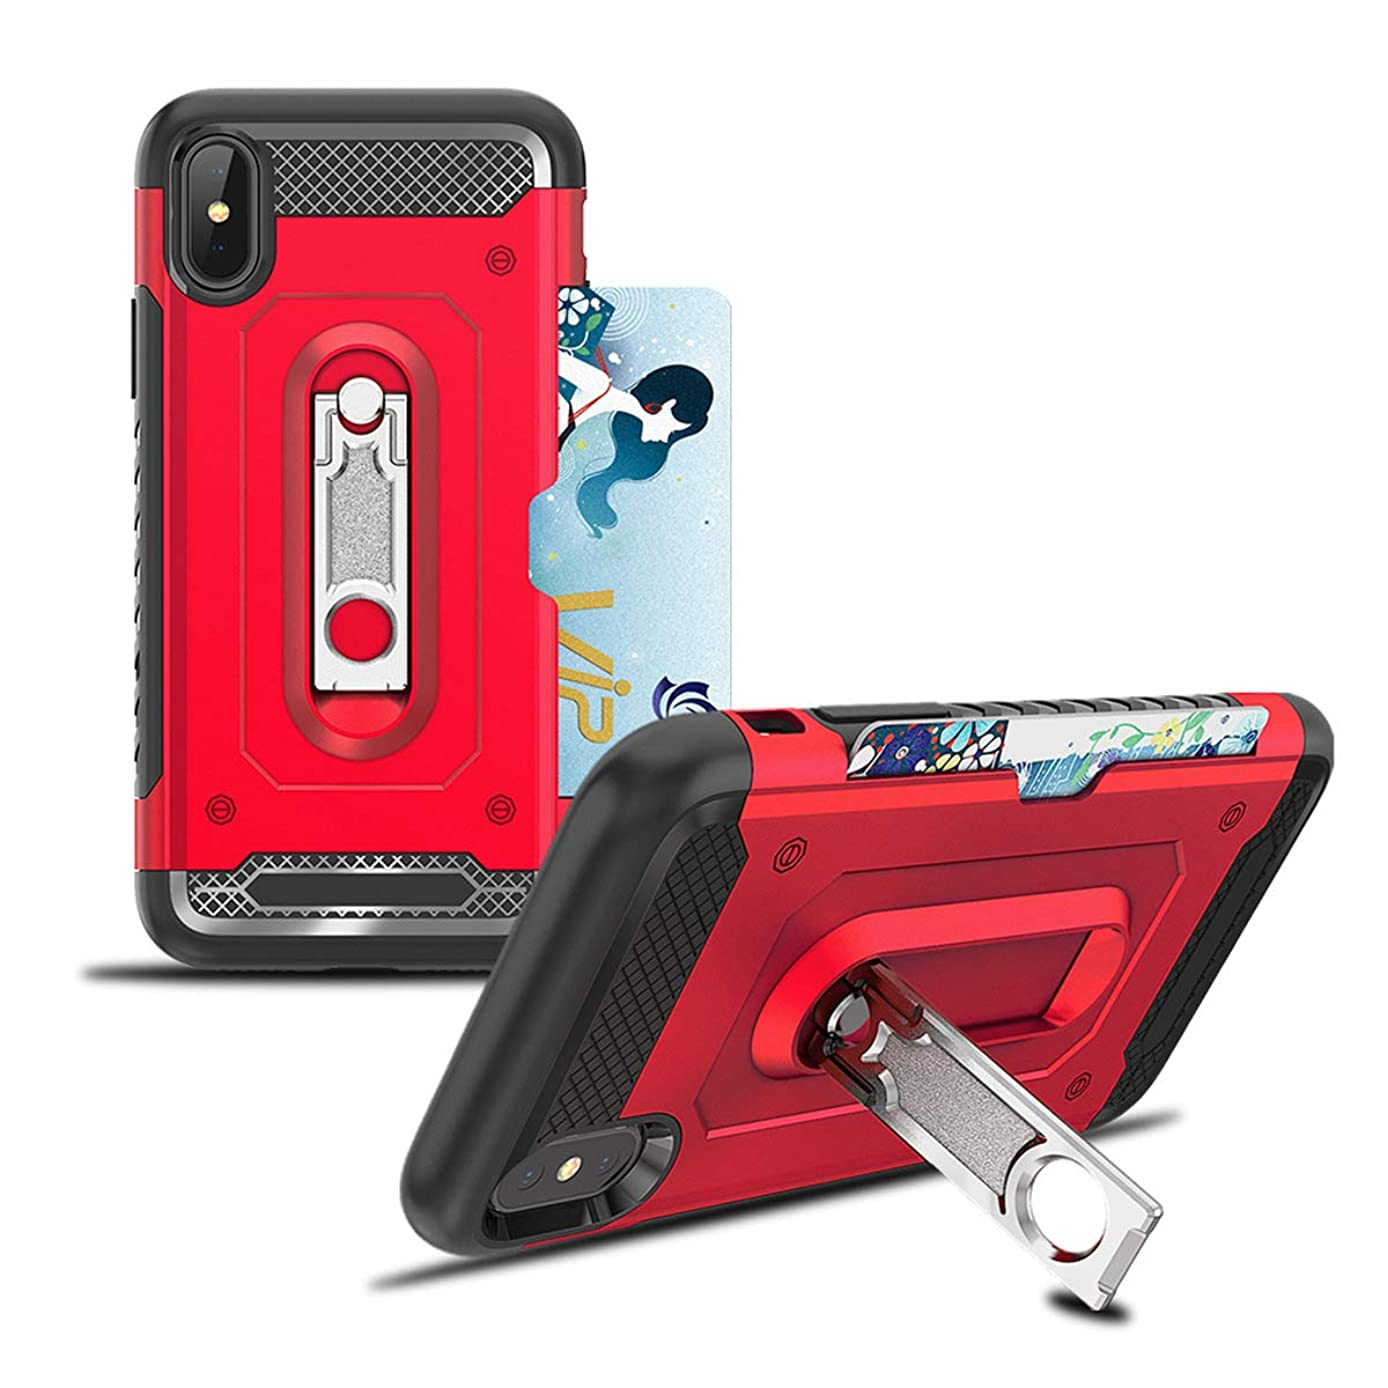 GLBYDLO Metal Kickstand Case Compatible with iPhone XR, 2 in 1 Hybrid Hard PC Cover & Soft Silicone Bumper Heavy Duty Slim Shockproof Full Body Rugged Protective Phone Case for iPhone XR, Red